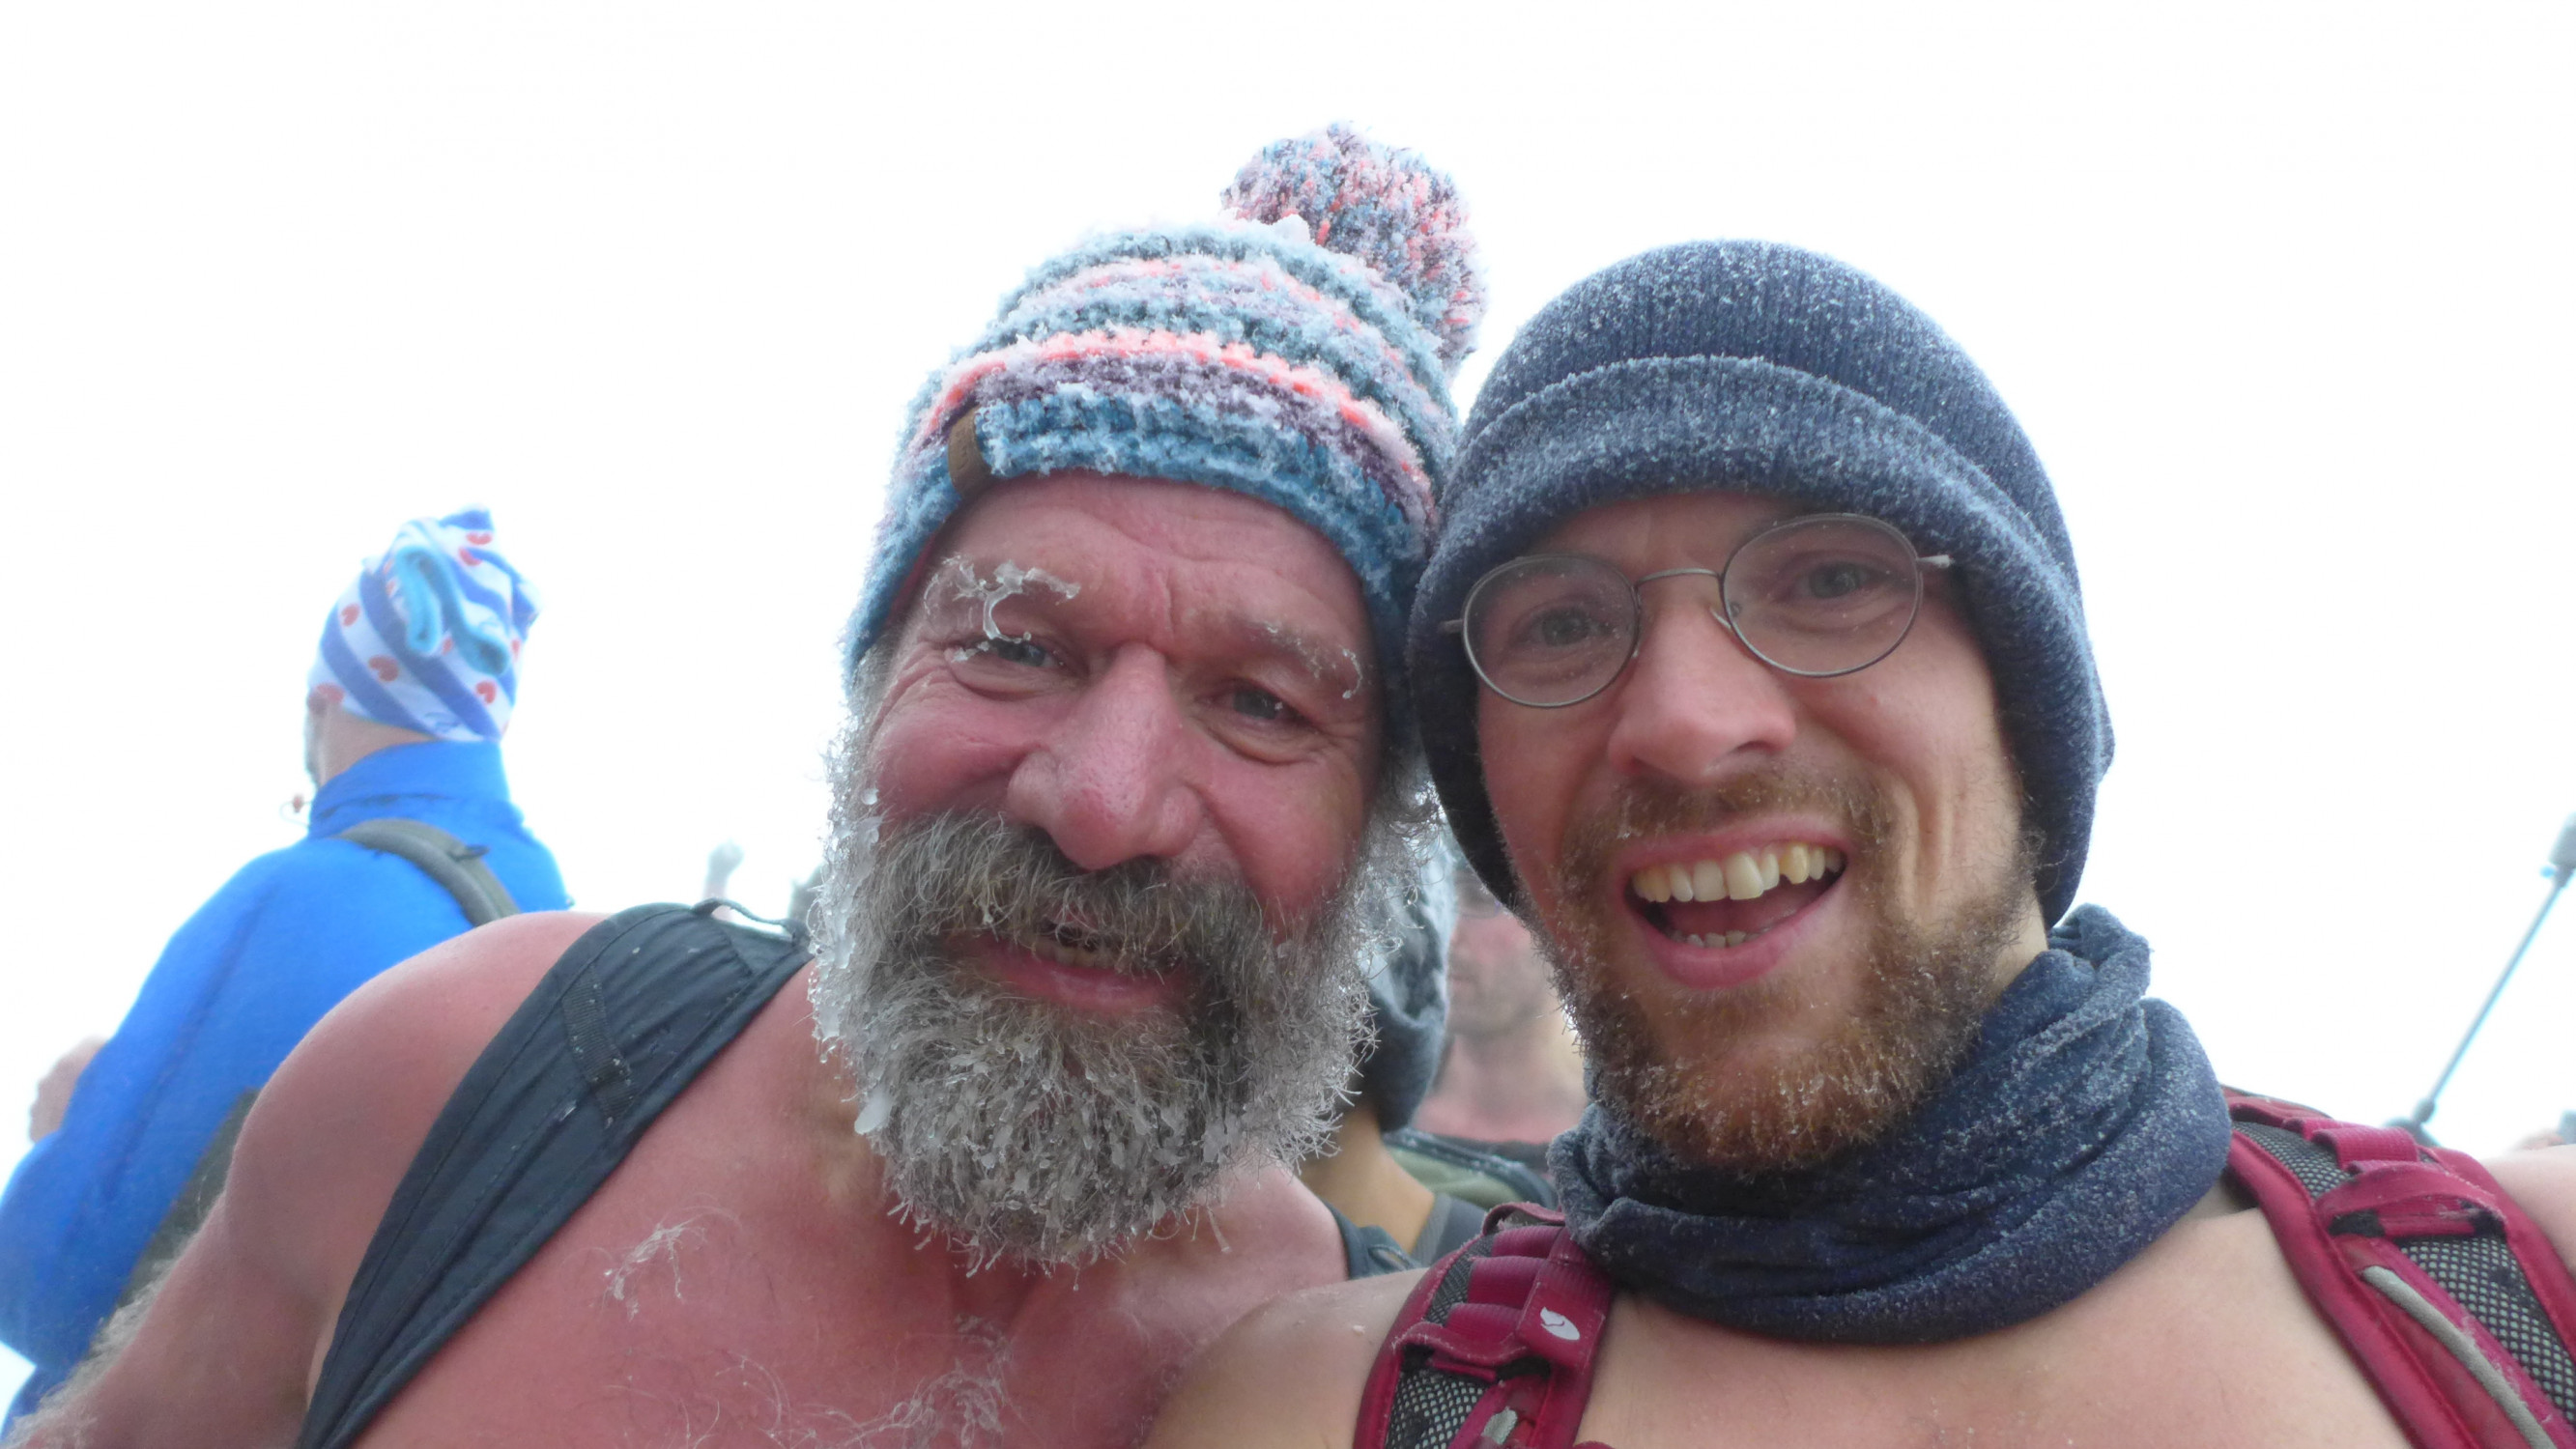 Image 3 of 4 - Experience the Wim Hof Method to get an impression of  at